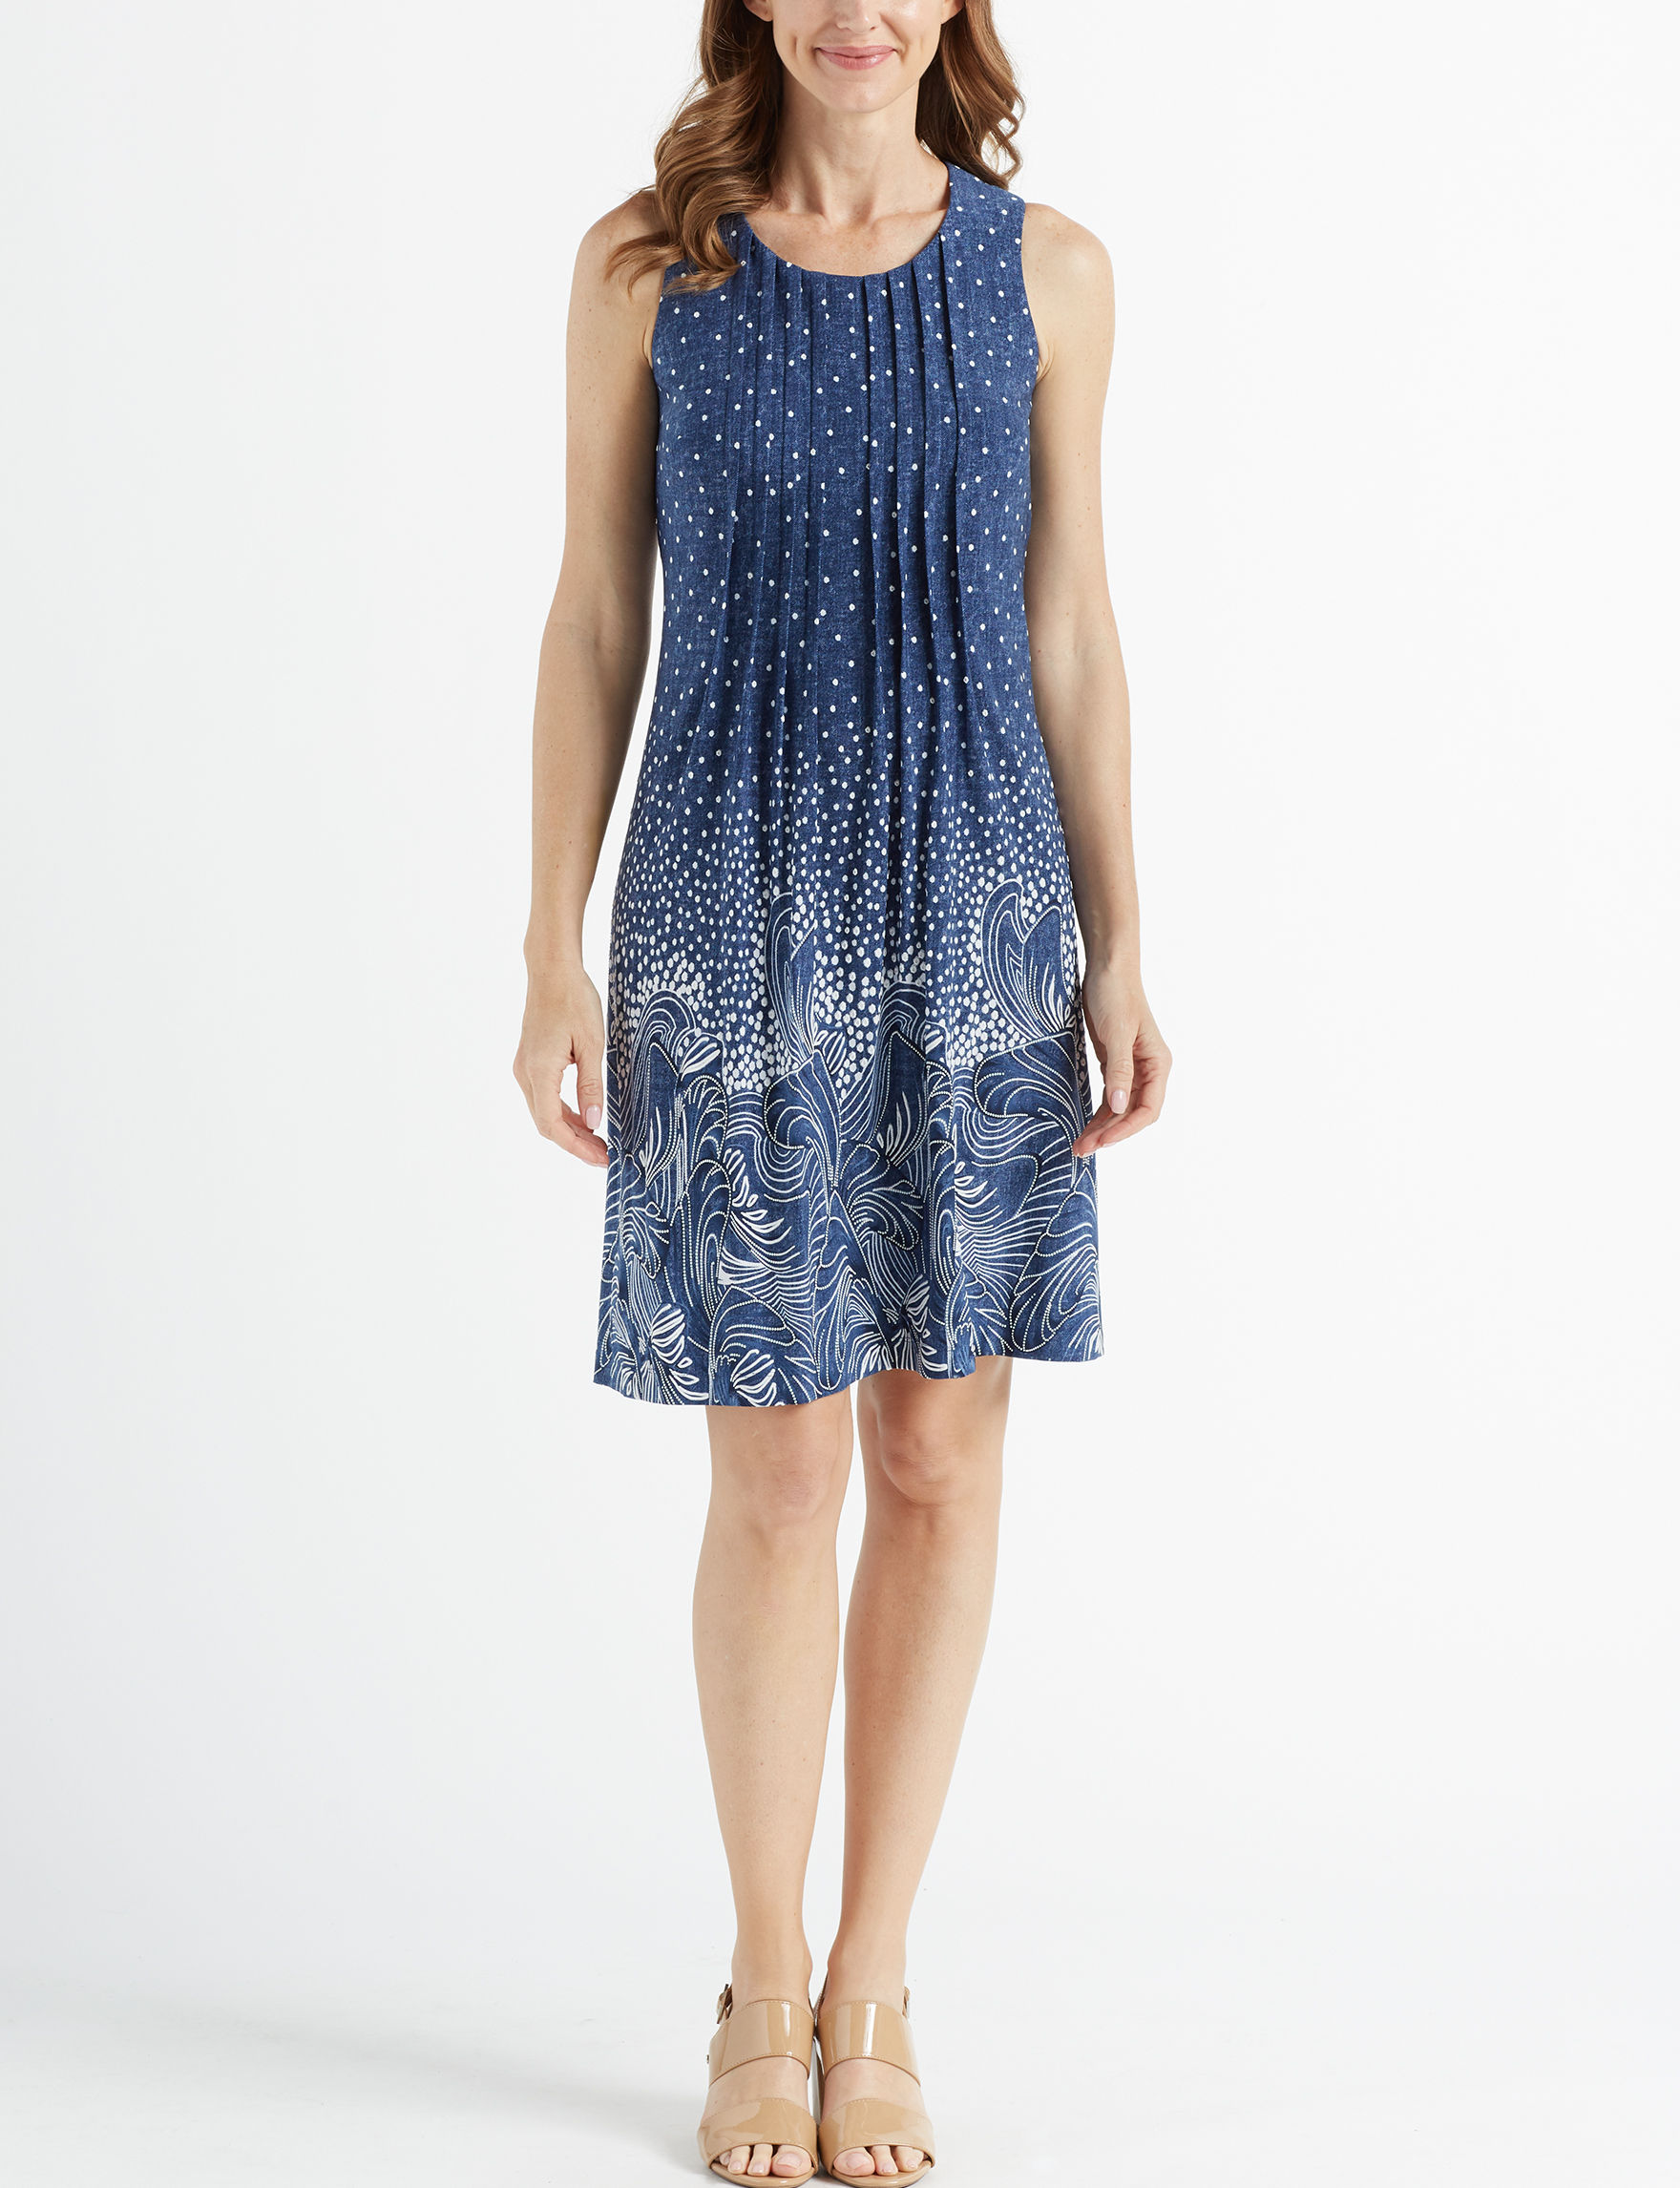 Perceptions Blue / White Everyday & Casual Shift Dresses